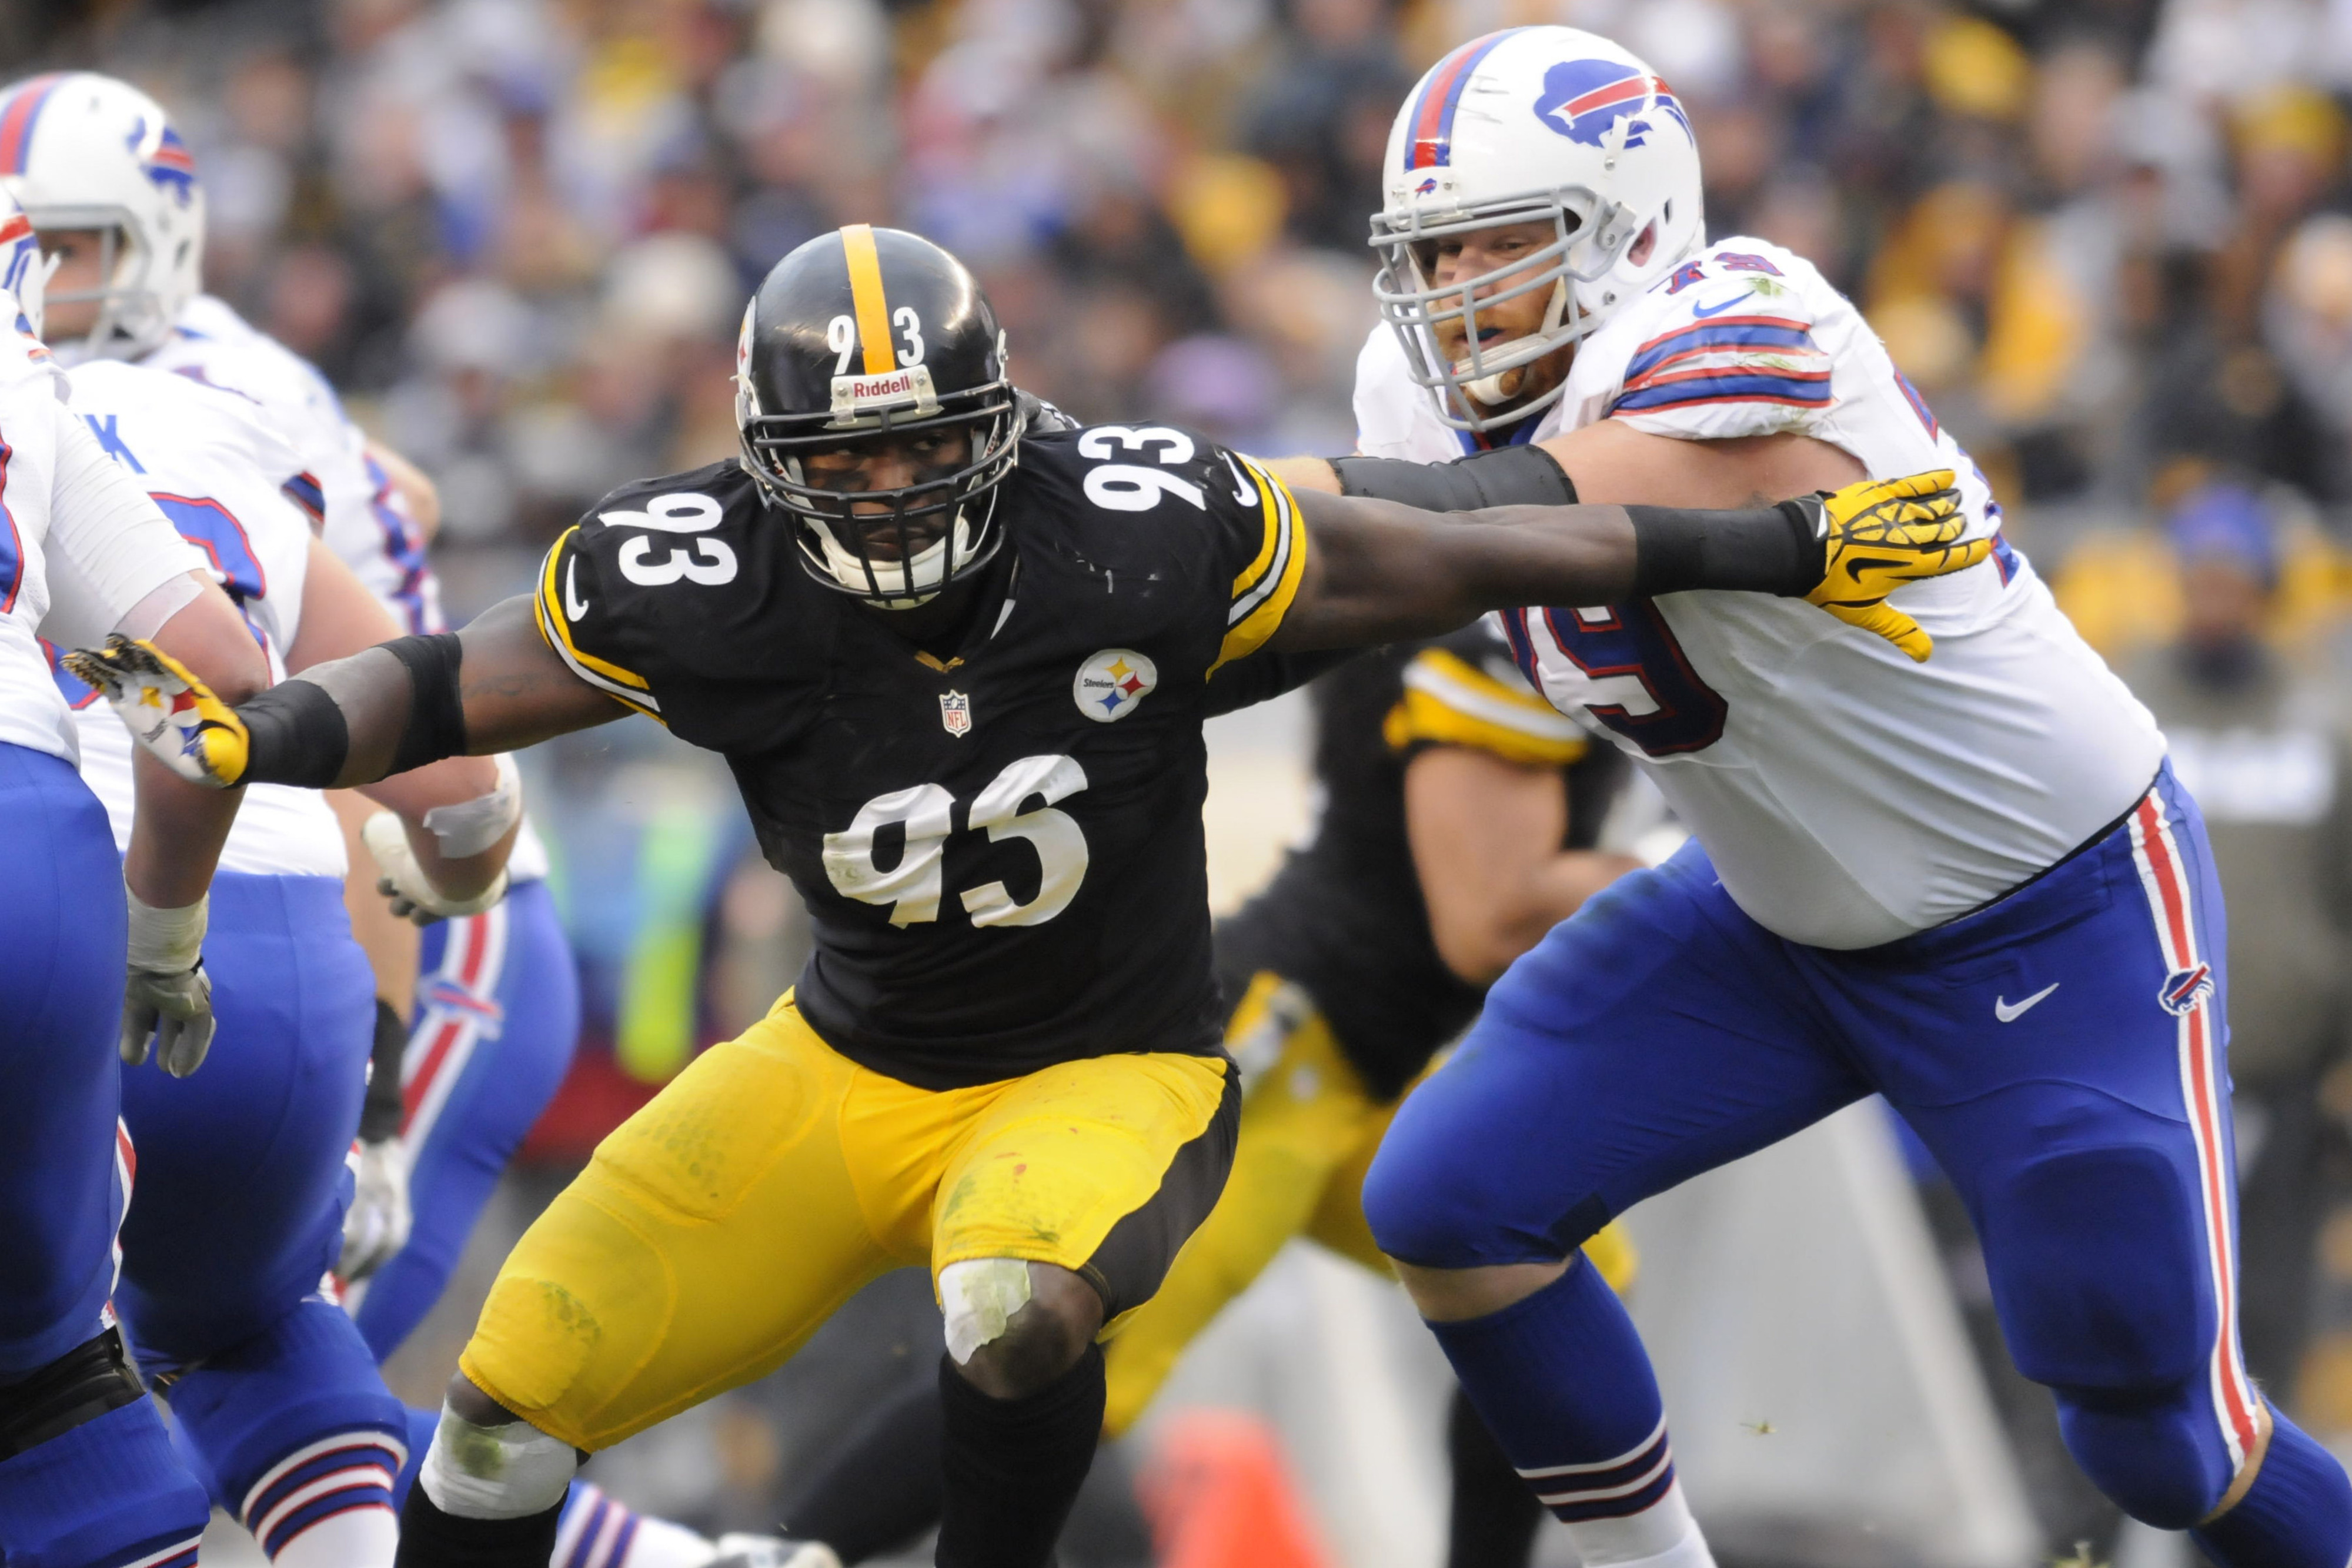 Jason Worilds, Steelers have had 'no productive talks' for potential long-term contract